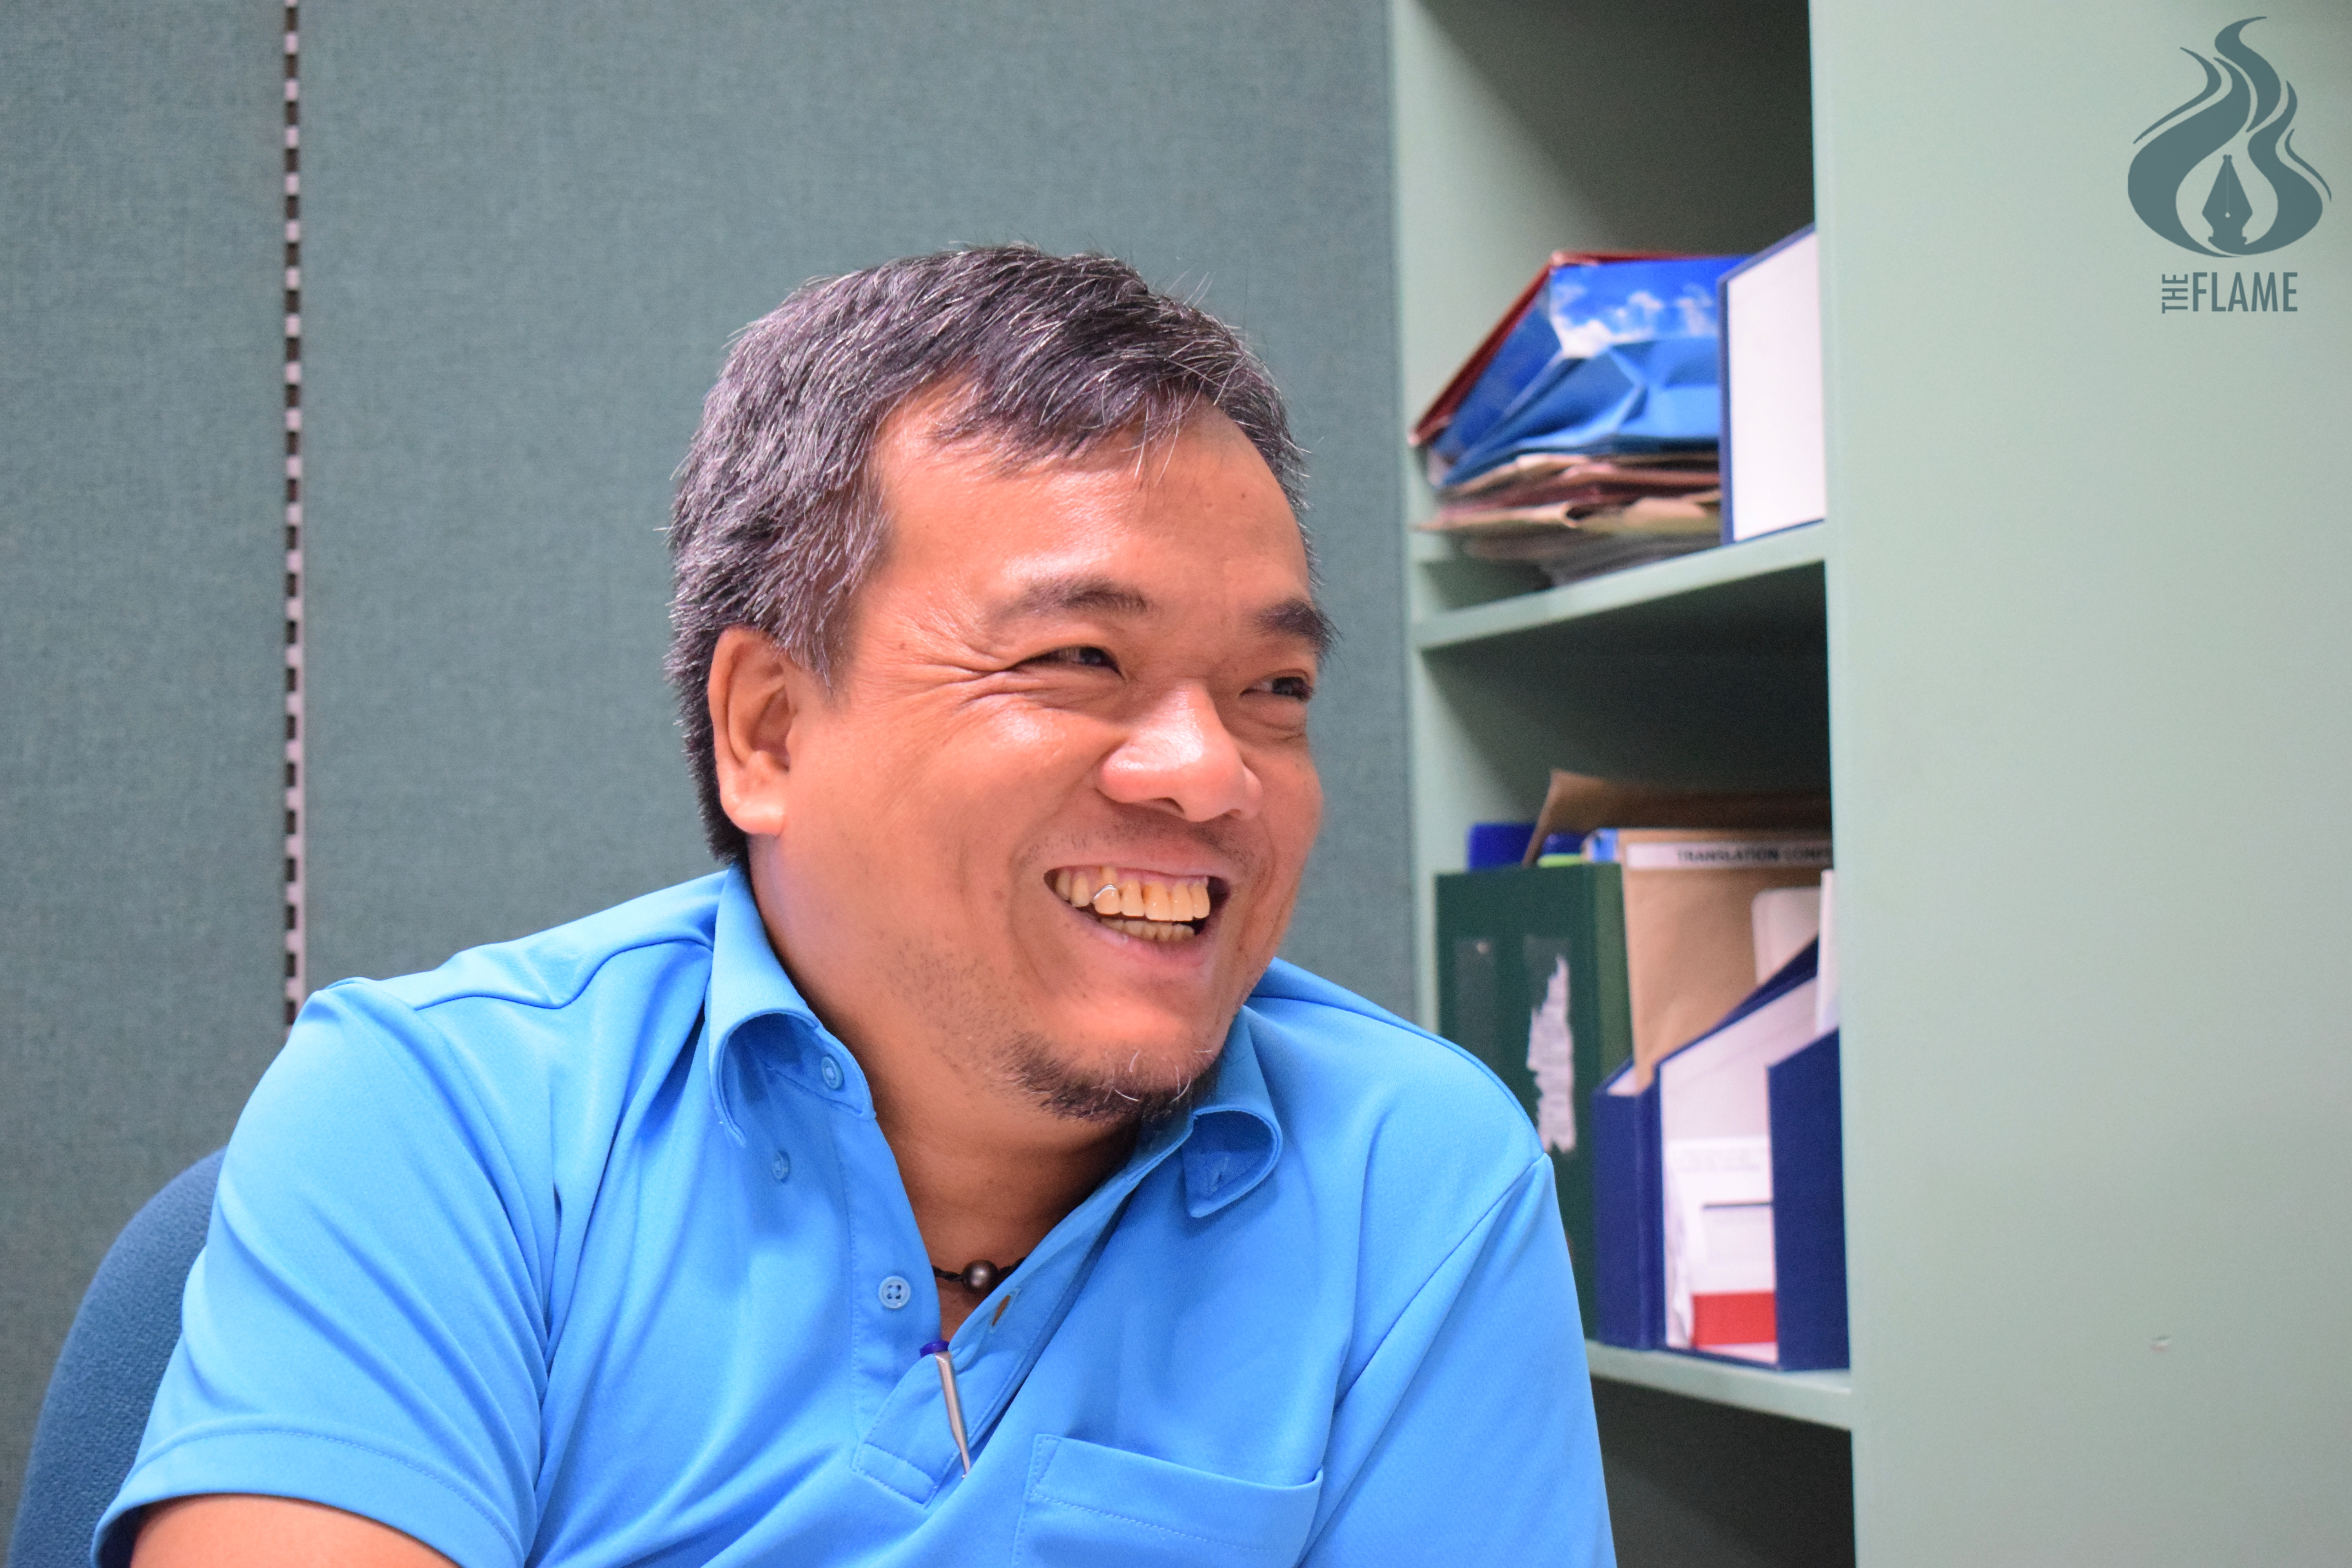 Joselito Delos Reyes: Education with a dose of laughter